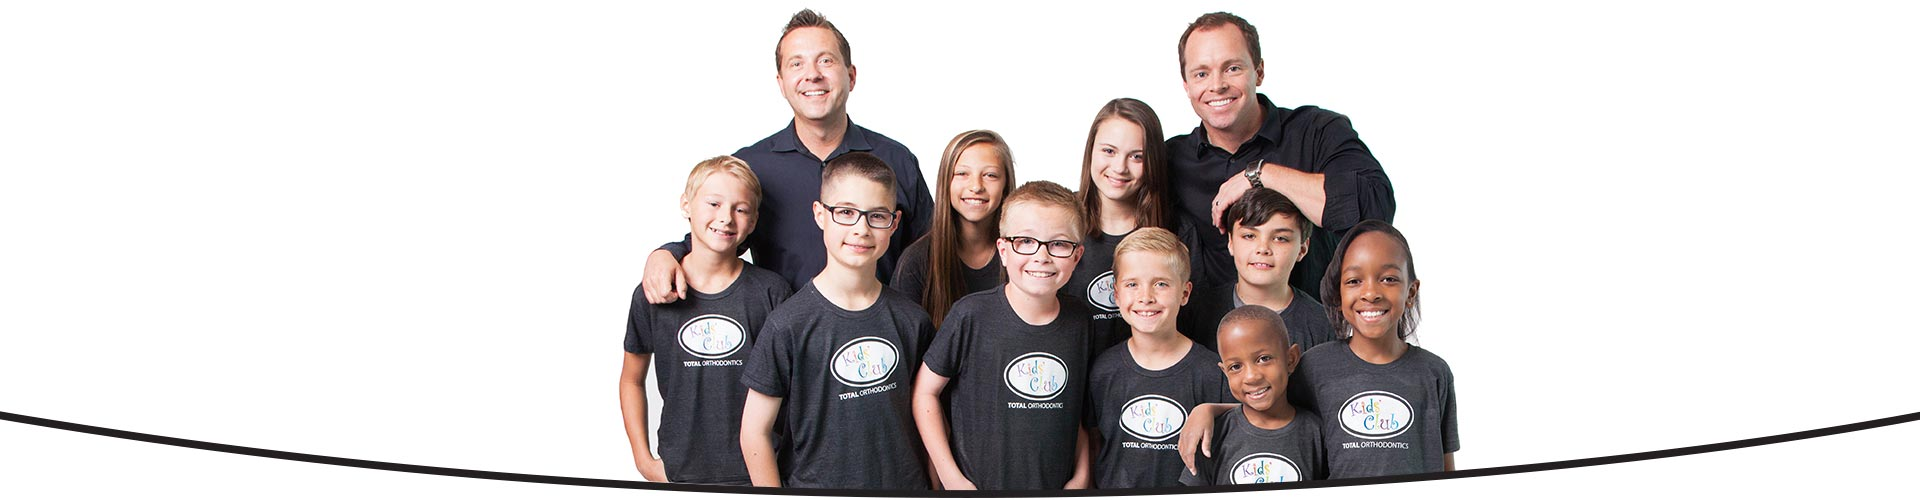 New Patients Photo at Total Orthodontics in Lone Tree and Greenwood Village CO